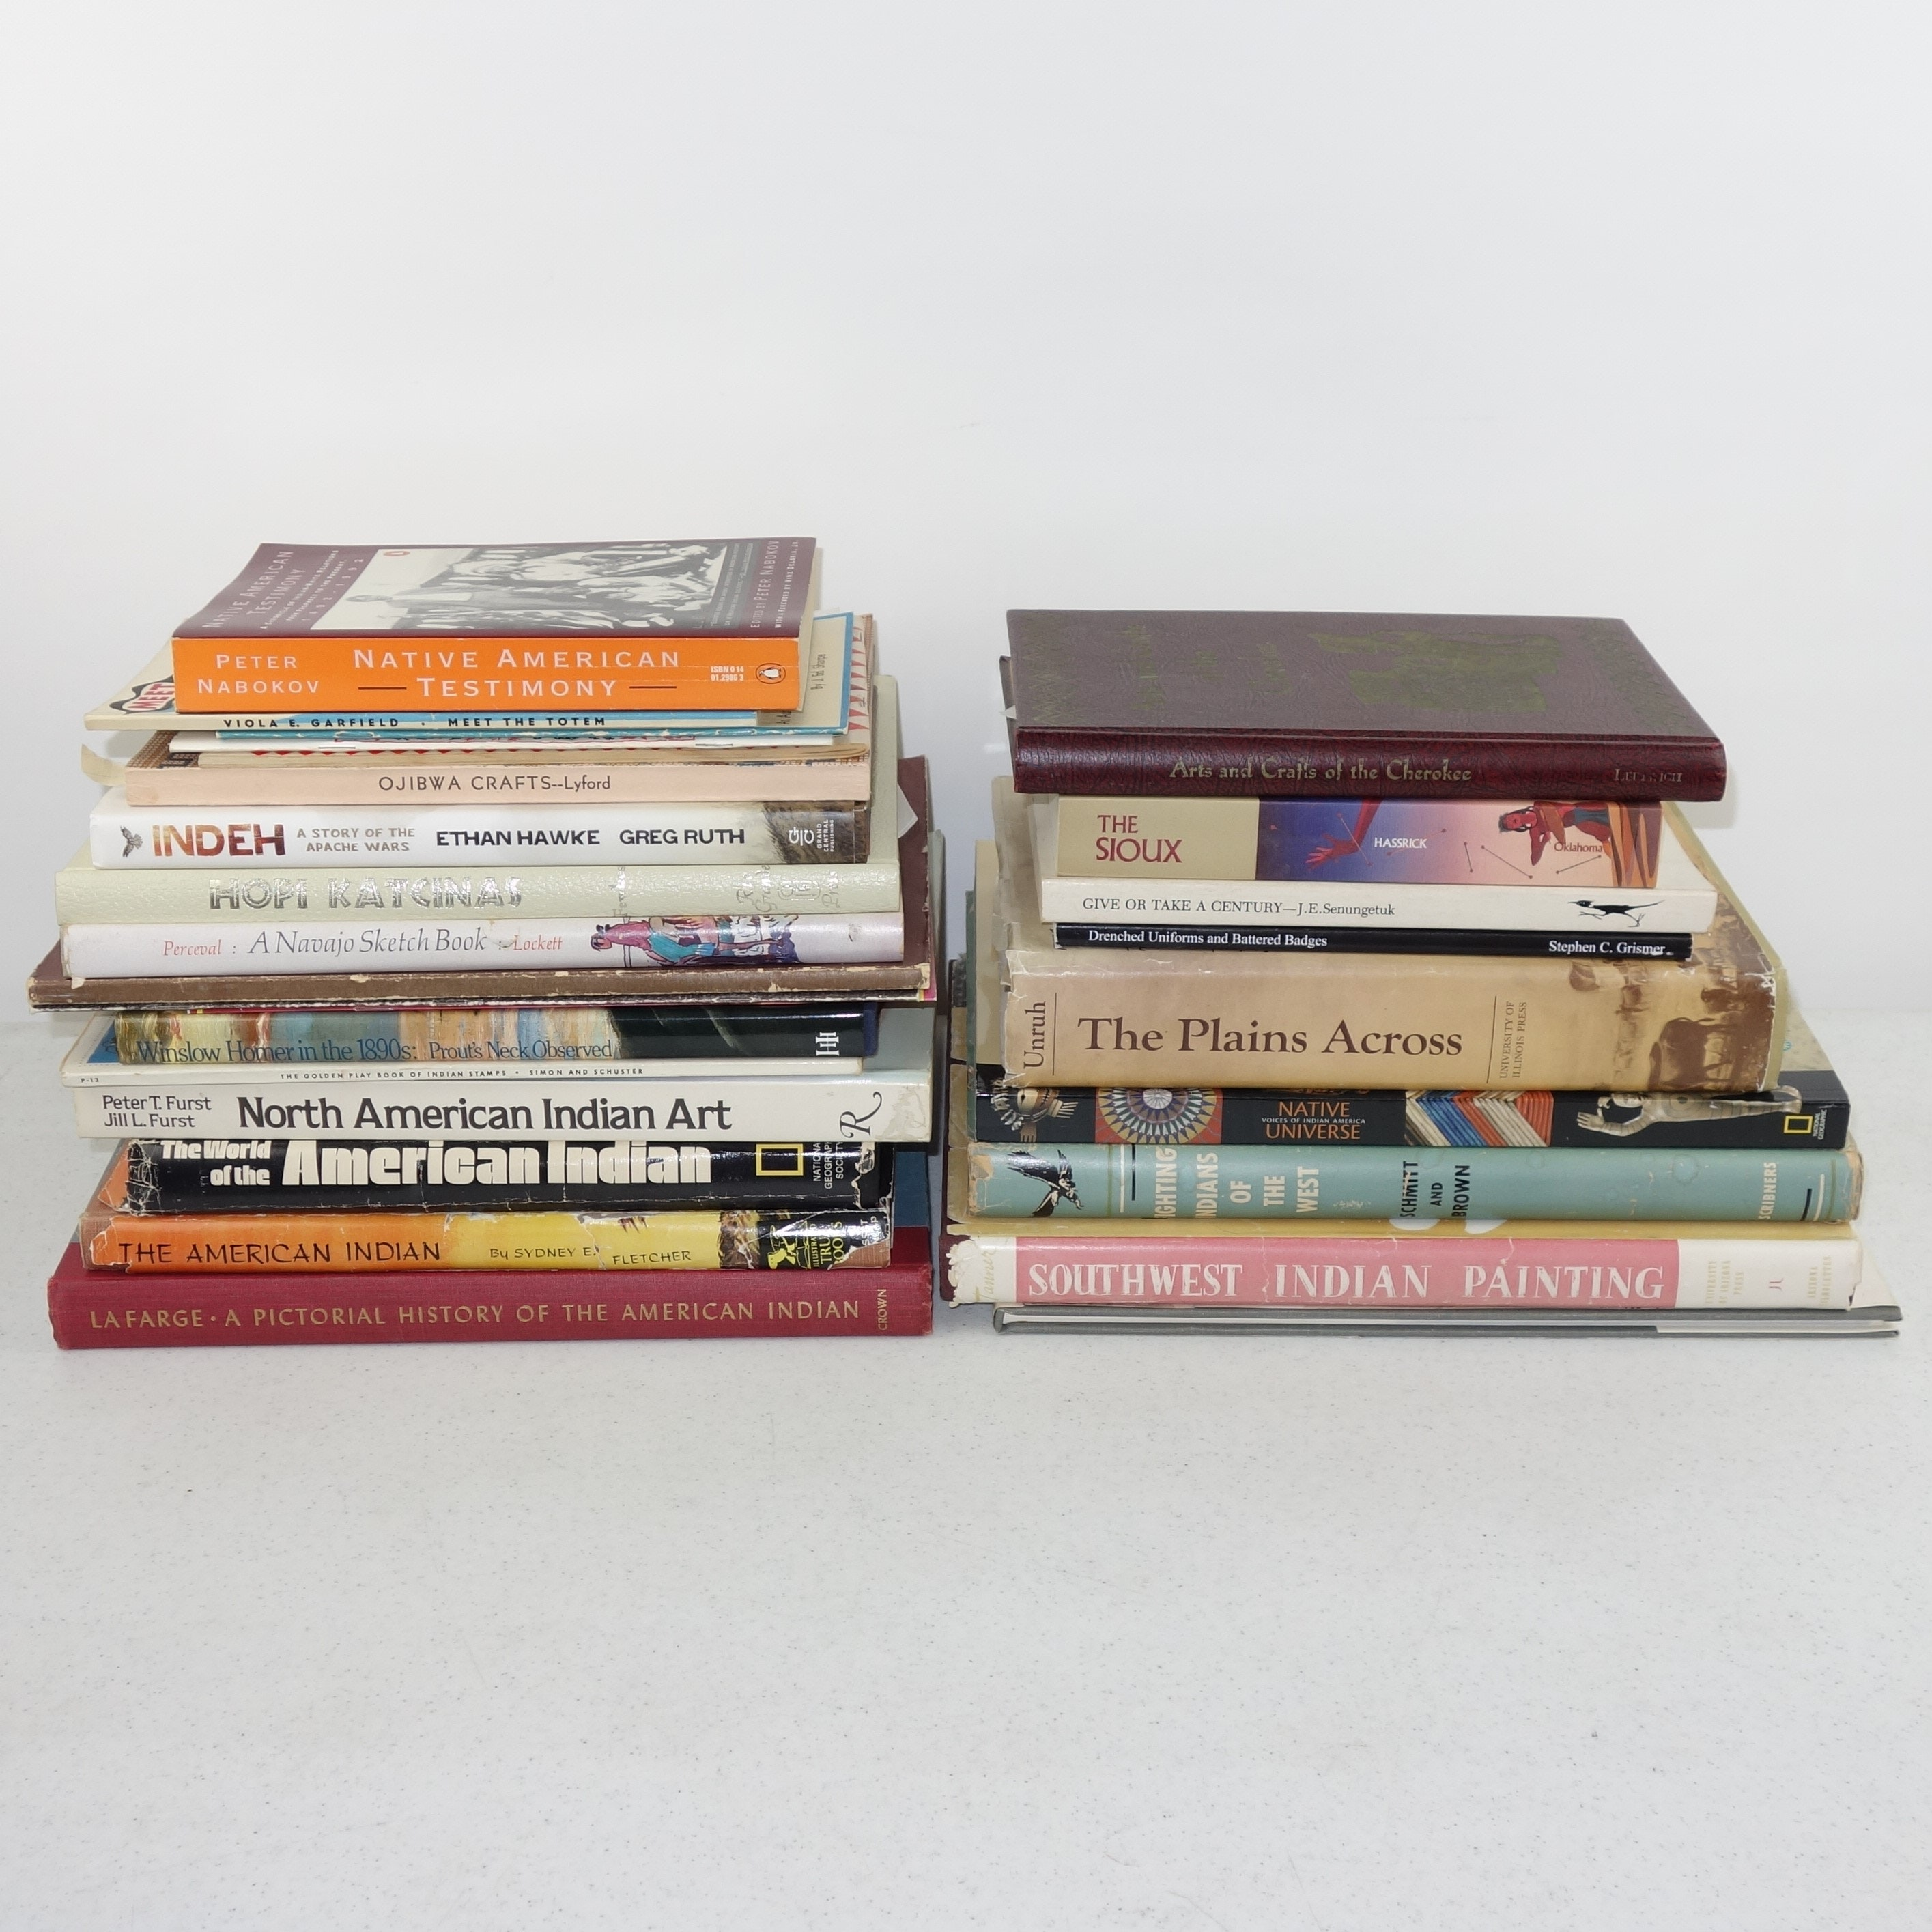 Vintage Books on Native American Culture and Art